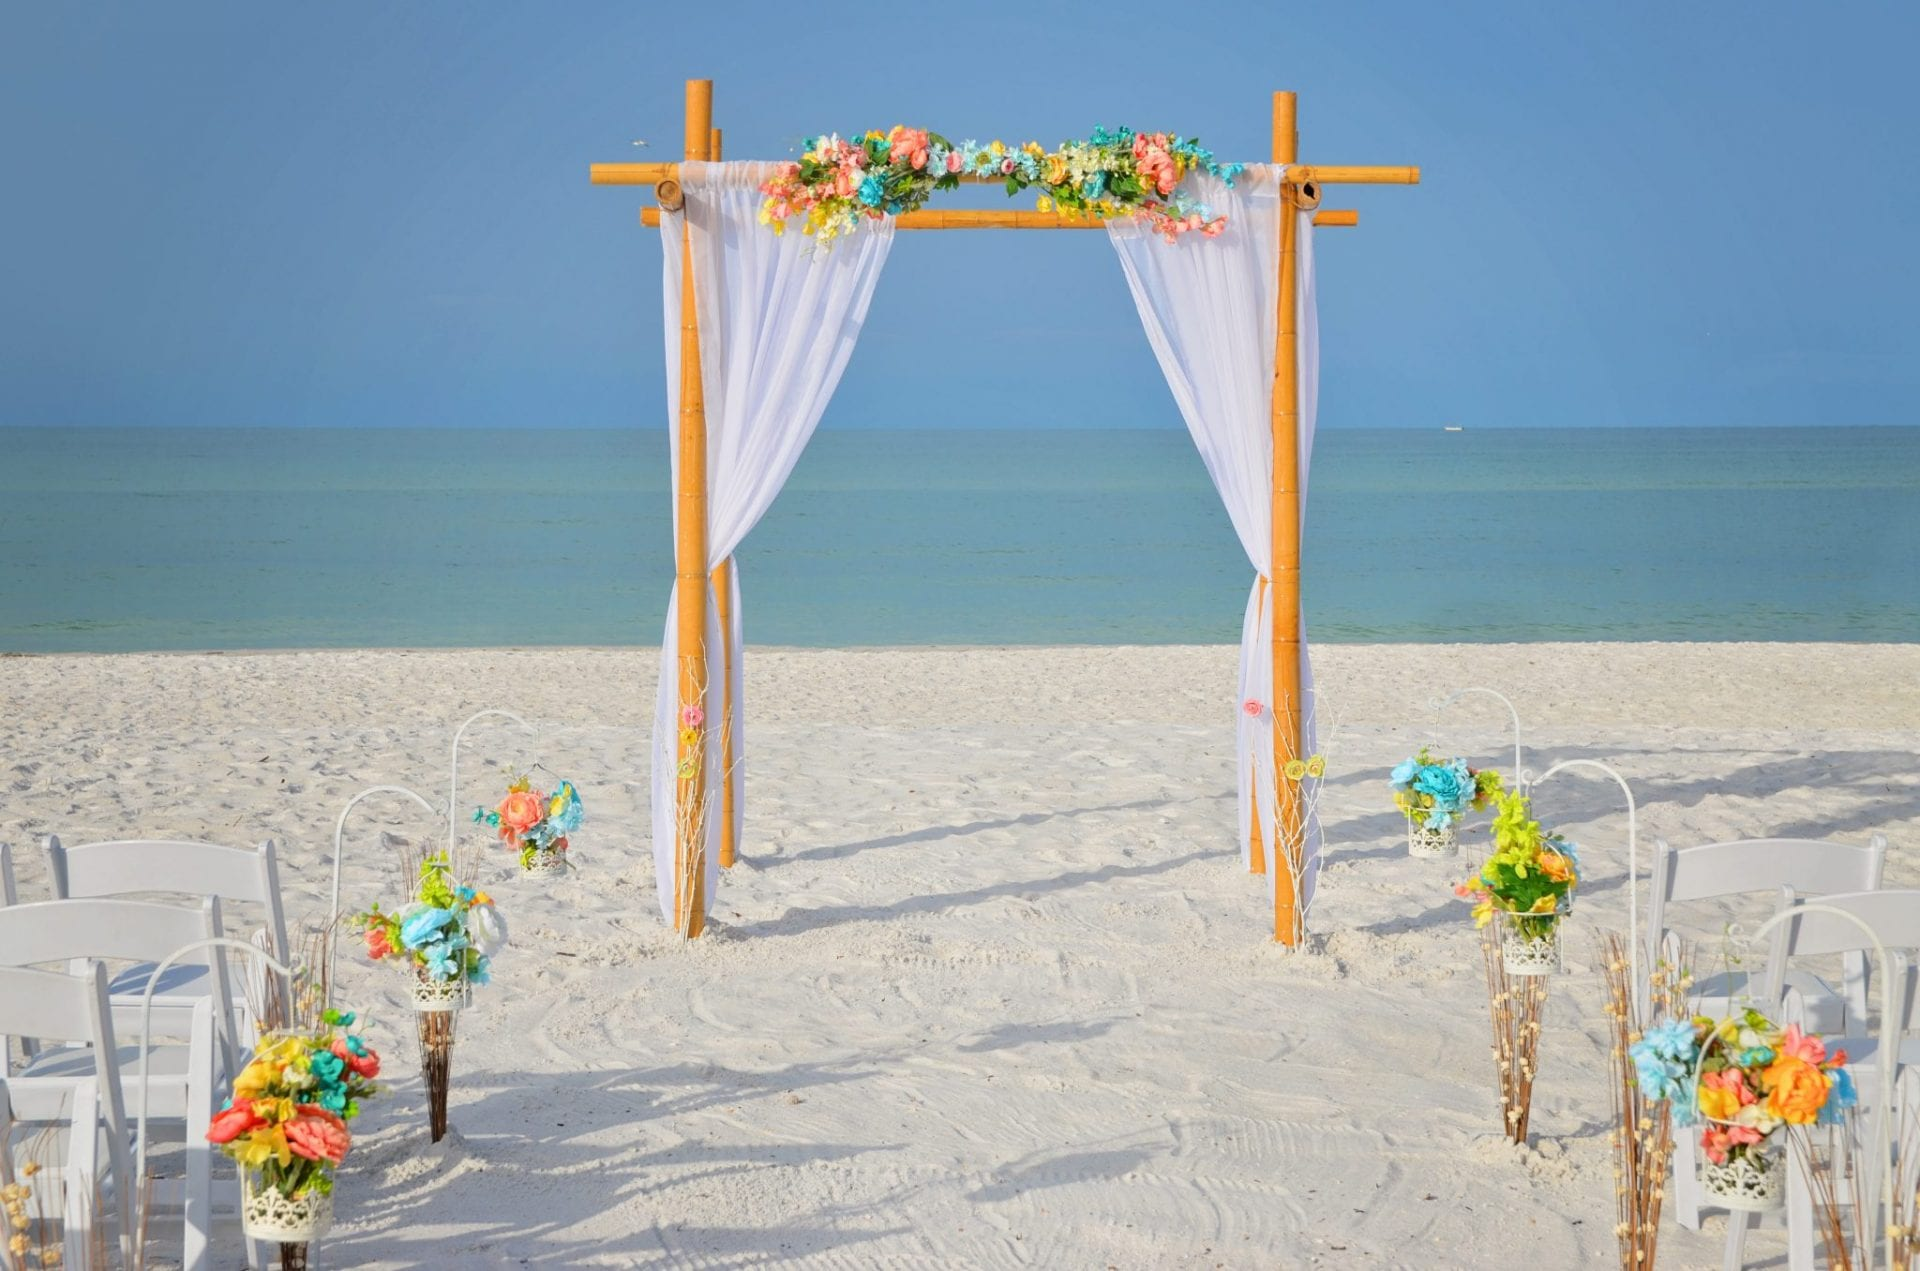 Floral bamboo draped wedding arch setup on Florida oceanfront